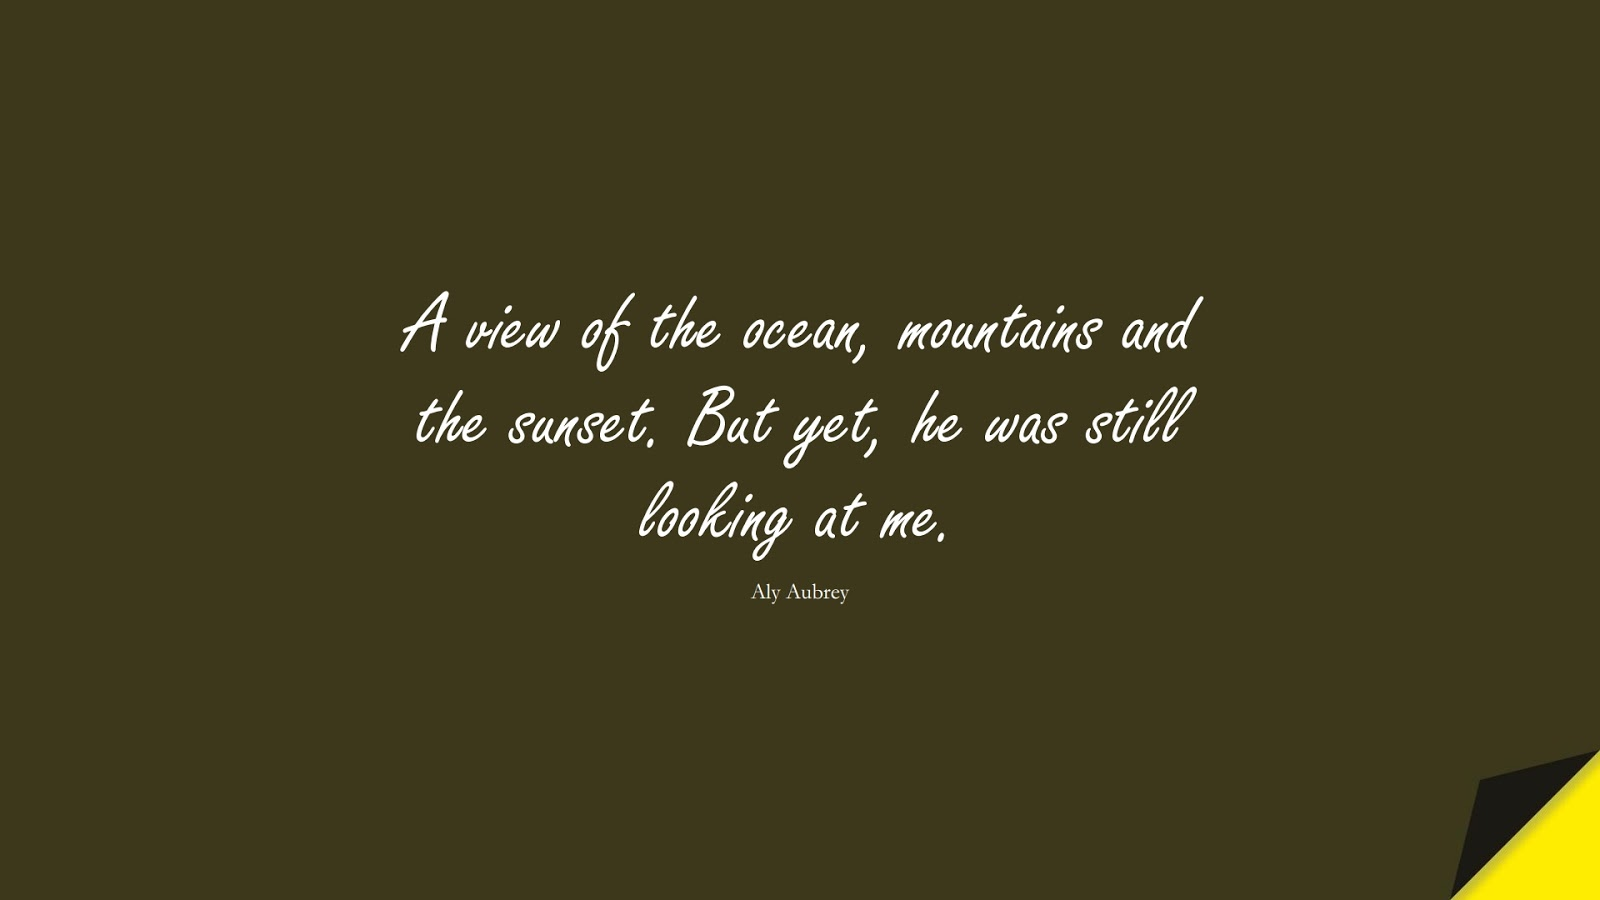 A view of the ocean, mountains and the sunset. But yet, he was still looking at me. (Aly Aubrey);  #LoveQuotes